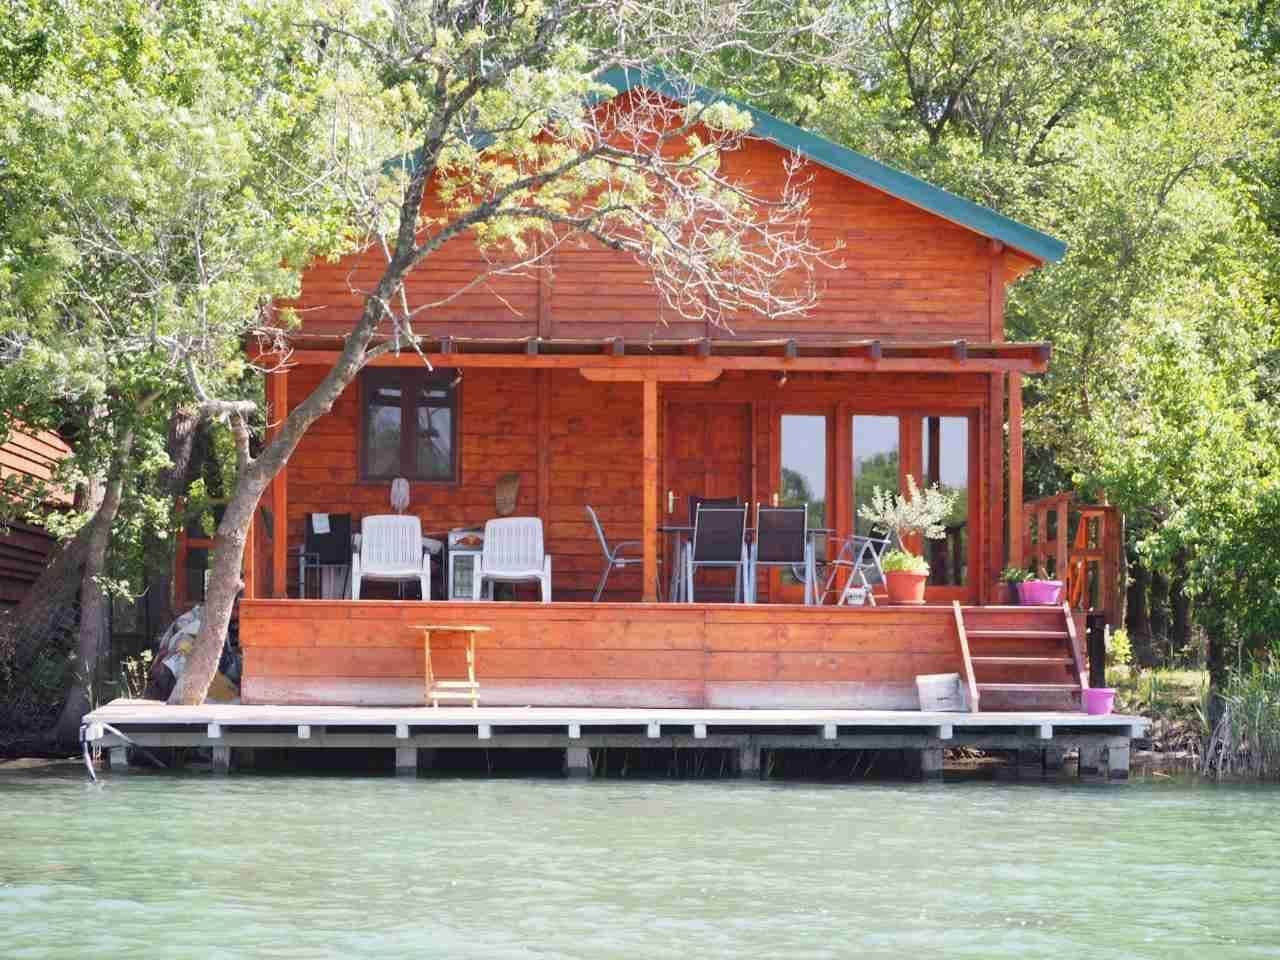 relaxing place to stay,dont need go to beach the river is clean and good for swim